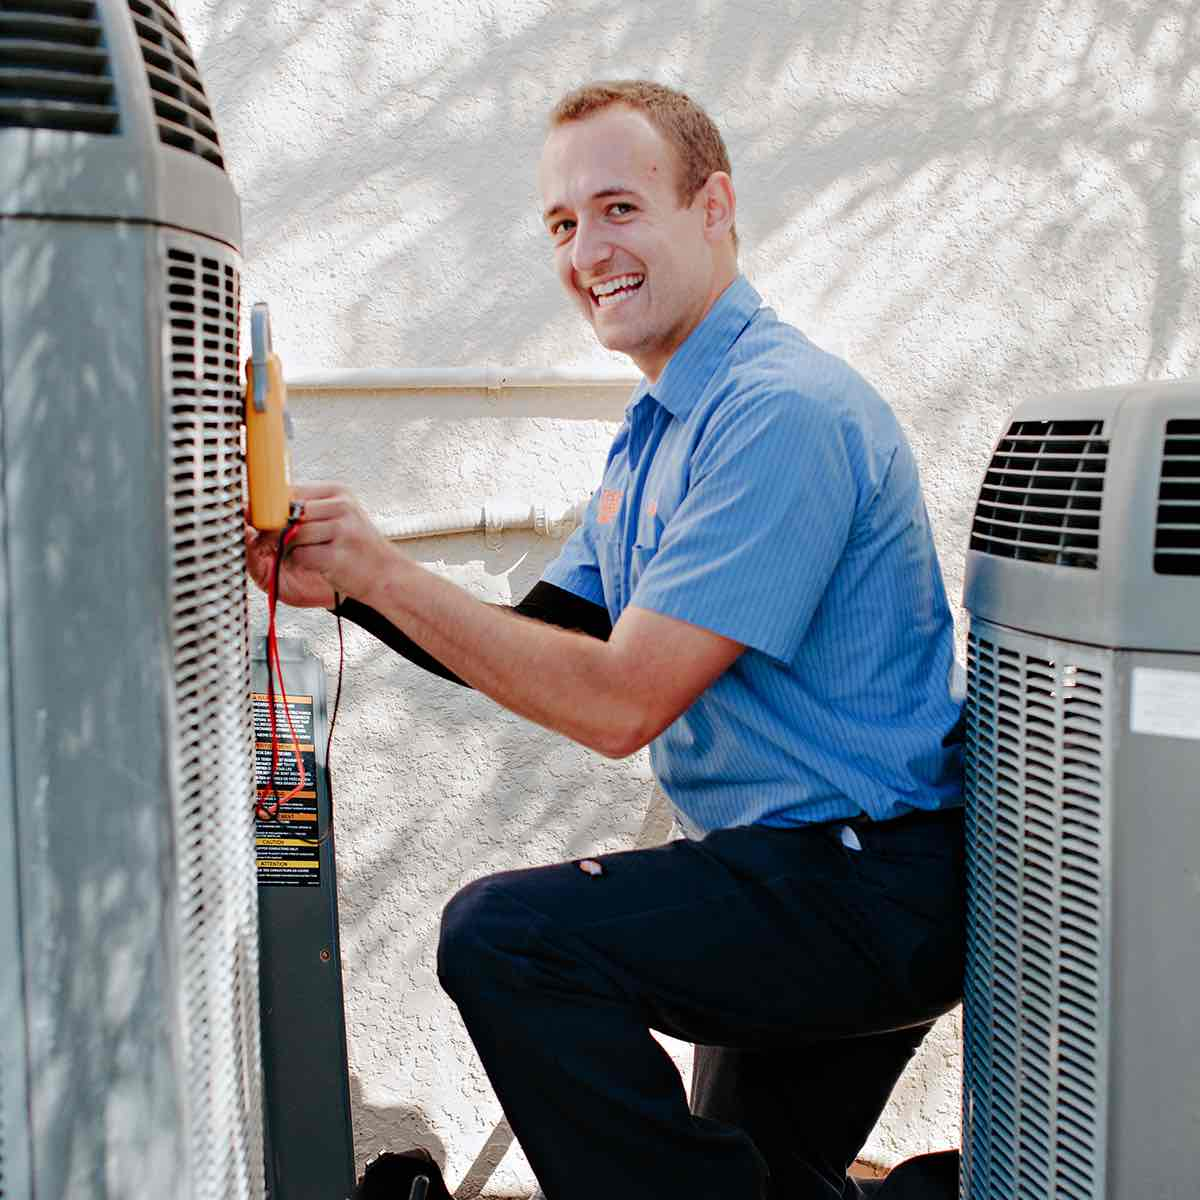 ac repair orlando from Pro-Tech Air Conditioning